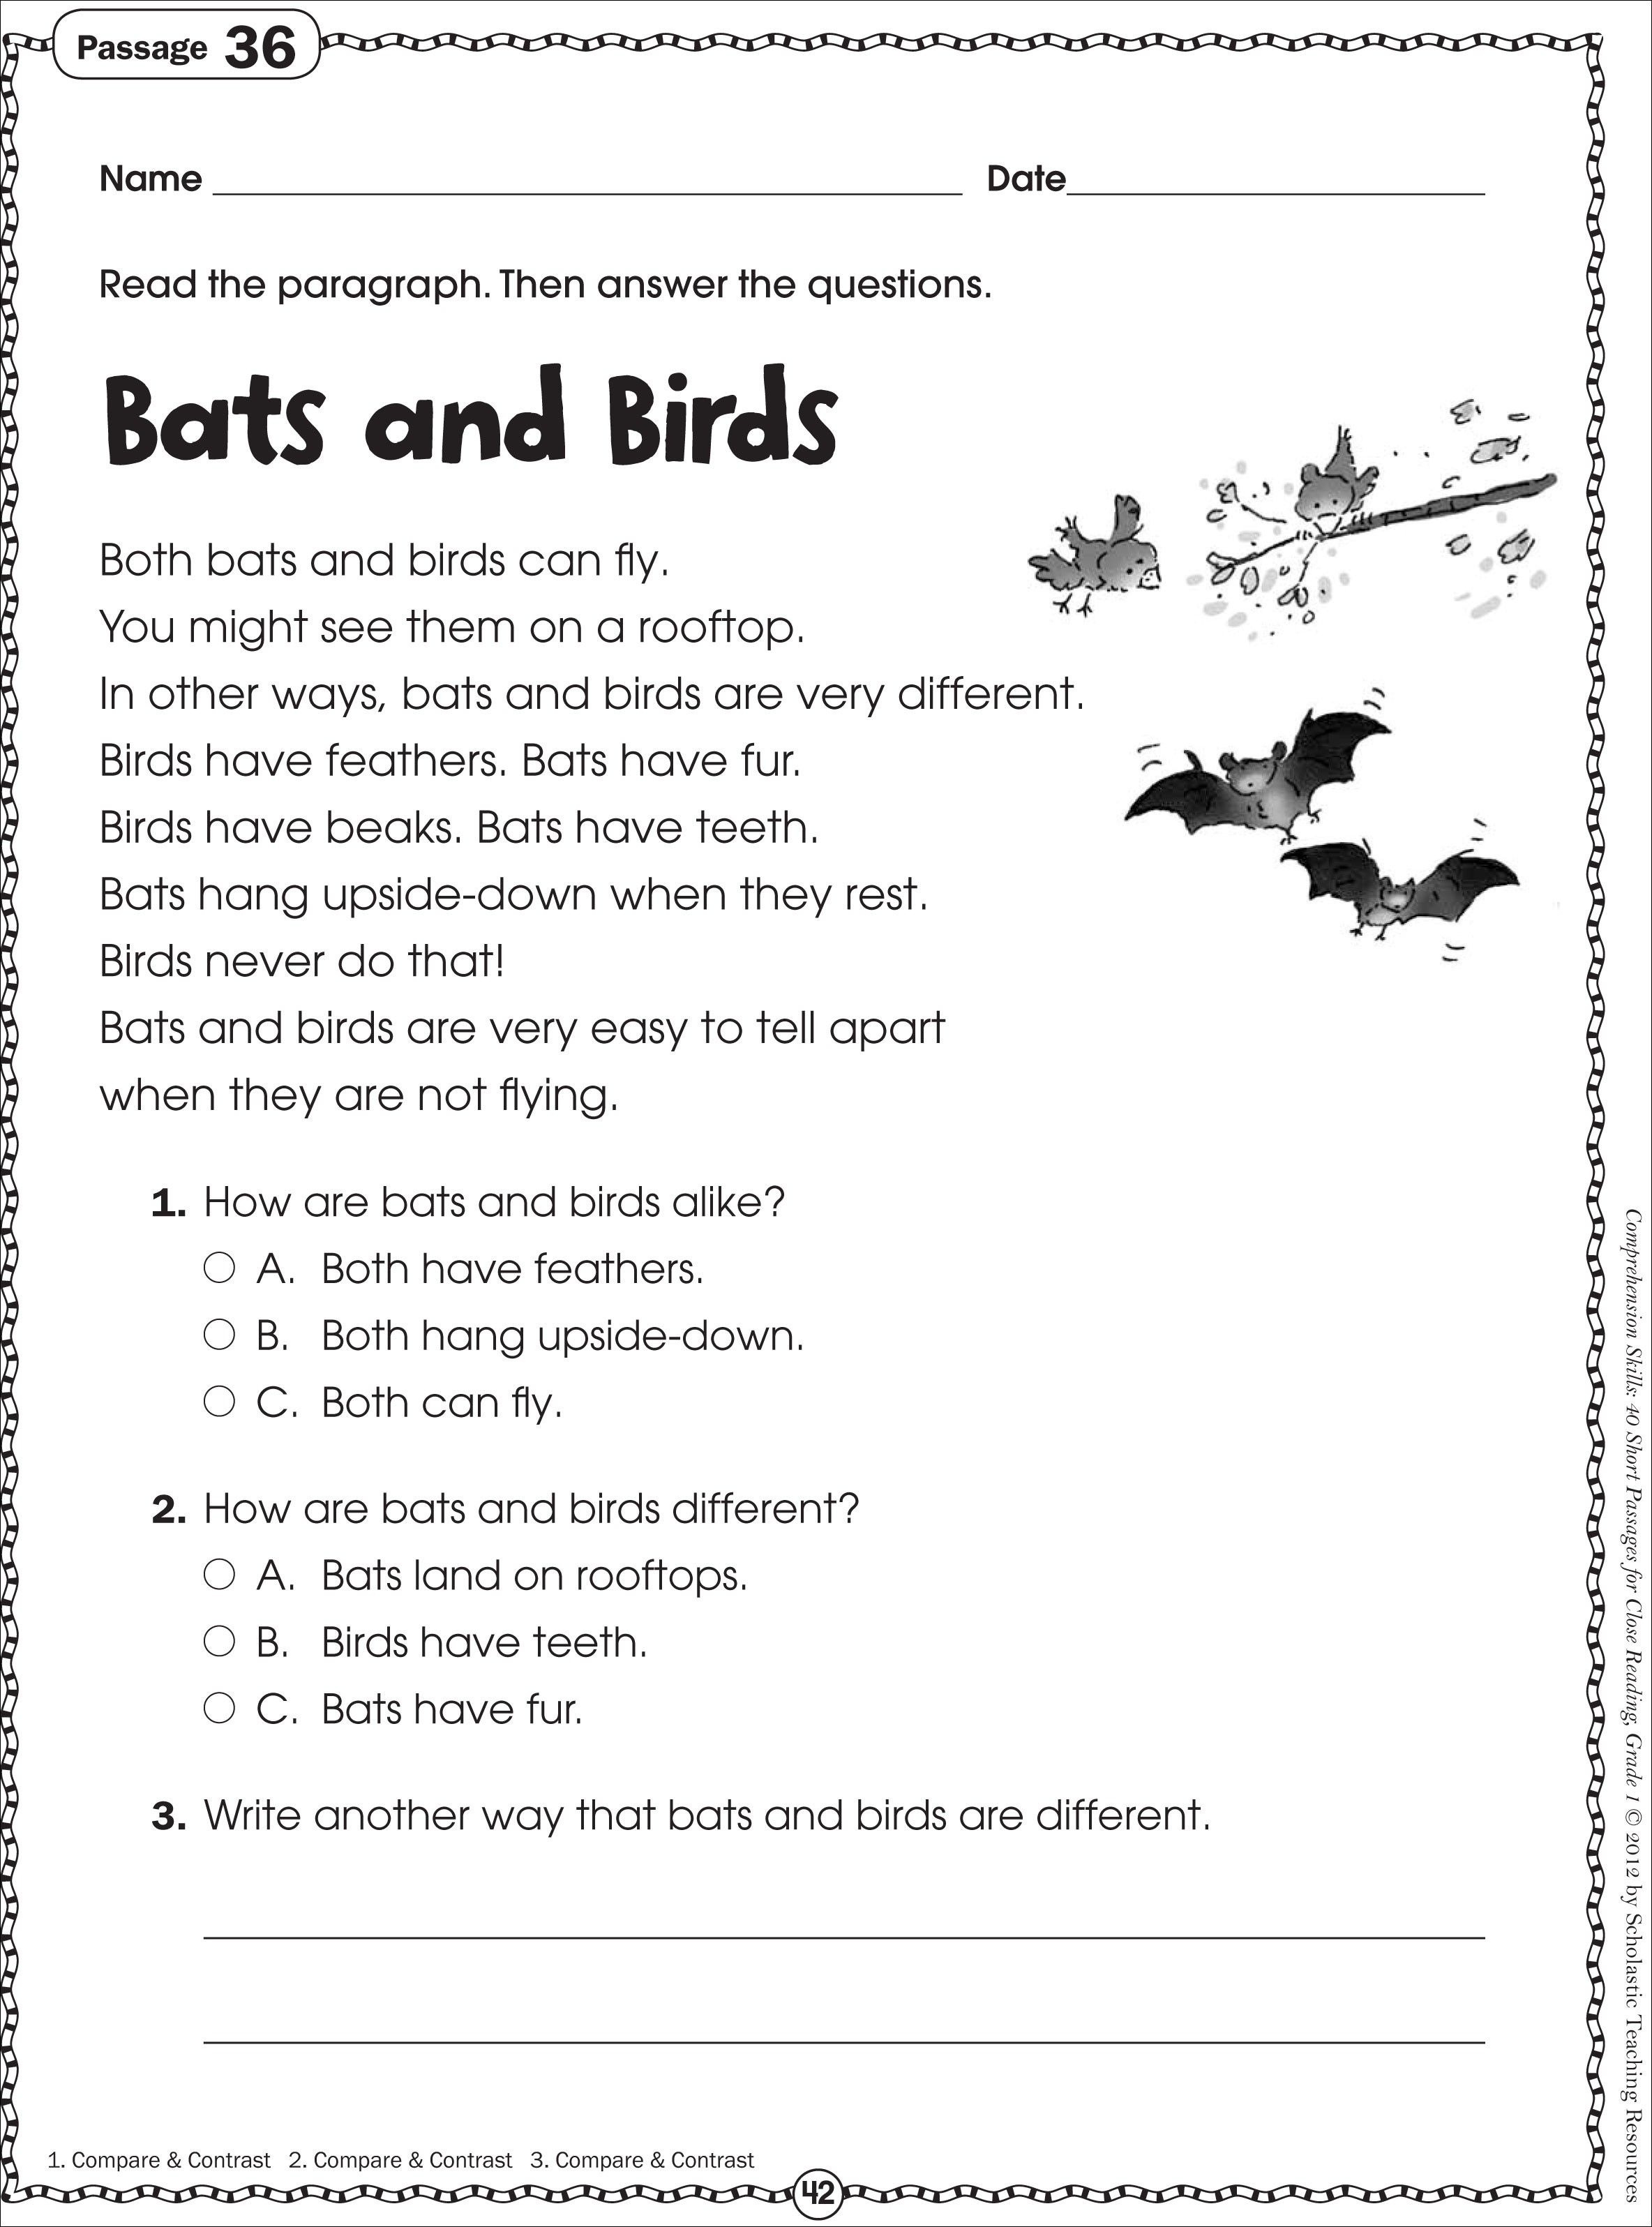 Free Printable Reading Comprehension Worksheets For Kindergarten - Free Printable Reading Passages With Questions